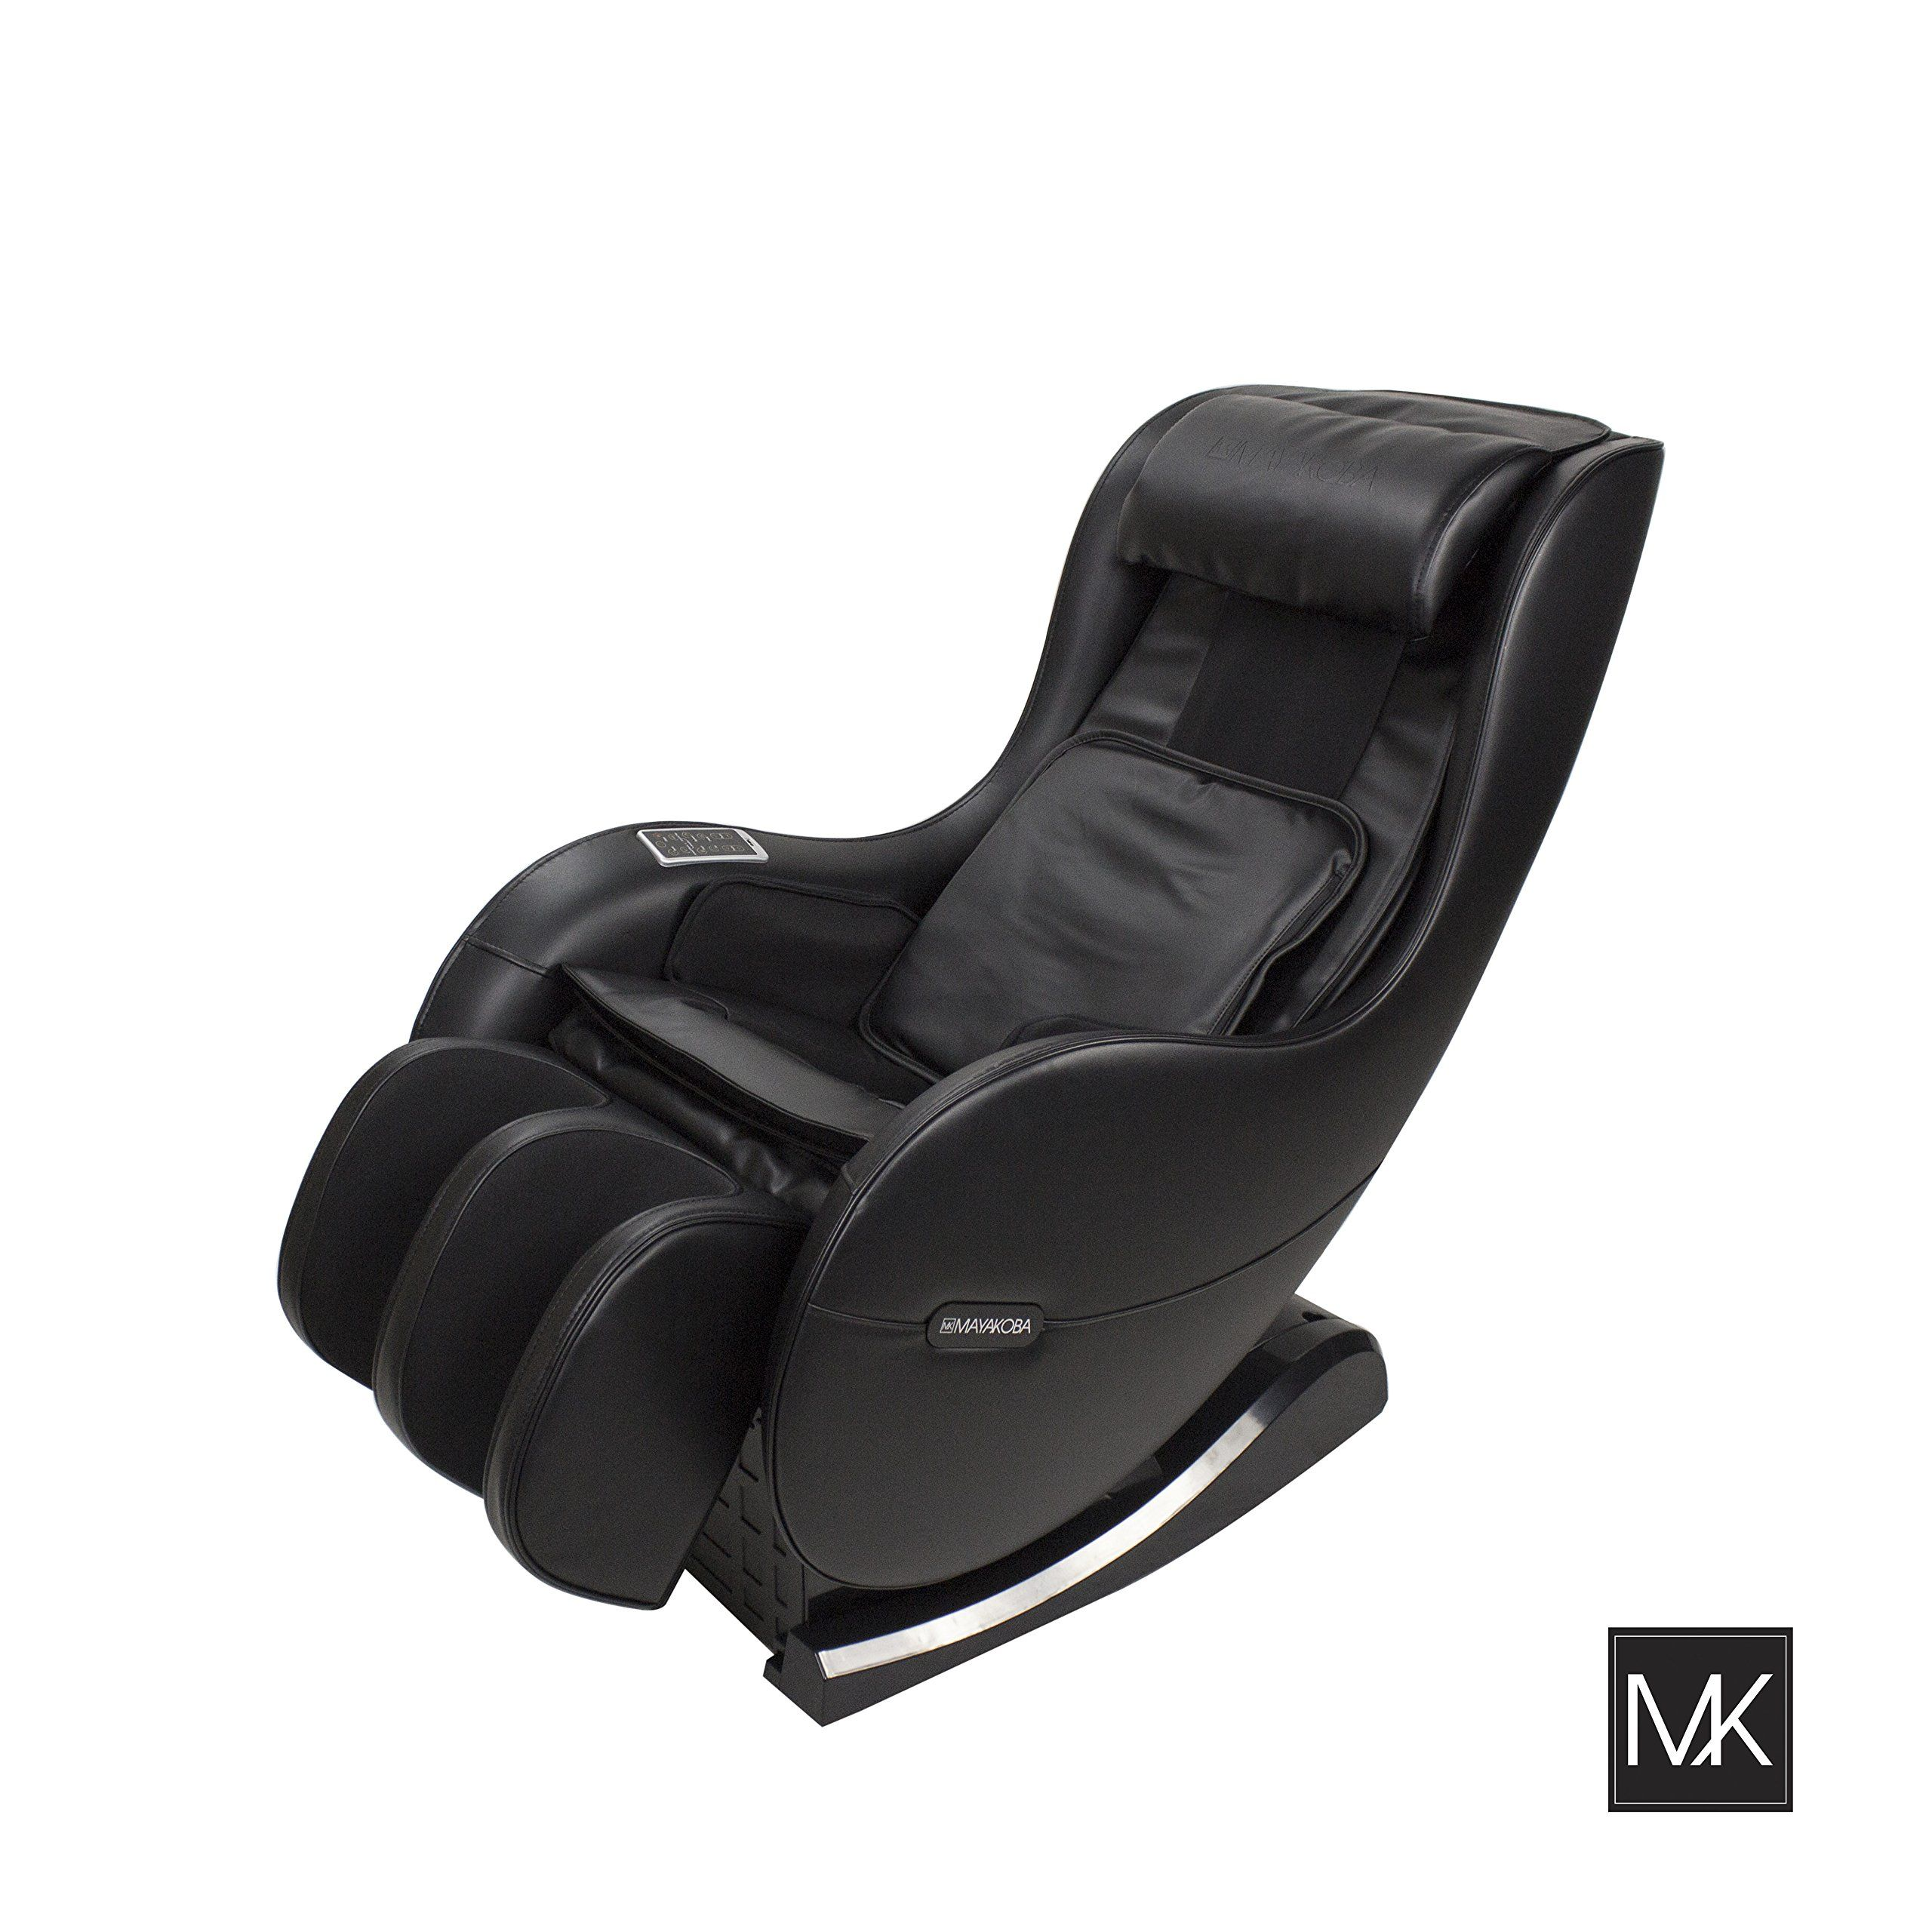 MAYAKOBA Full Body Shiatsu Massage Chair Zero Gravity